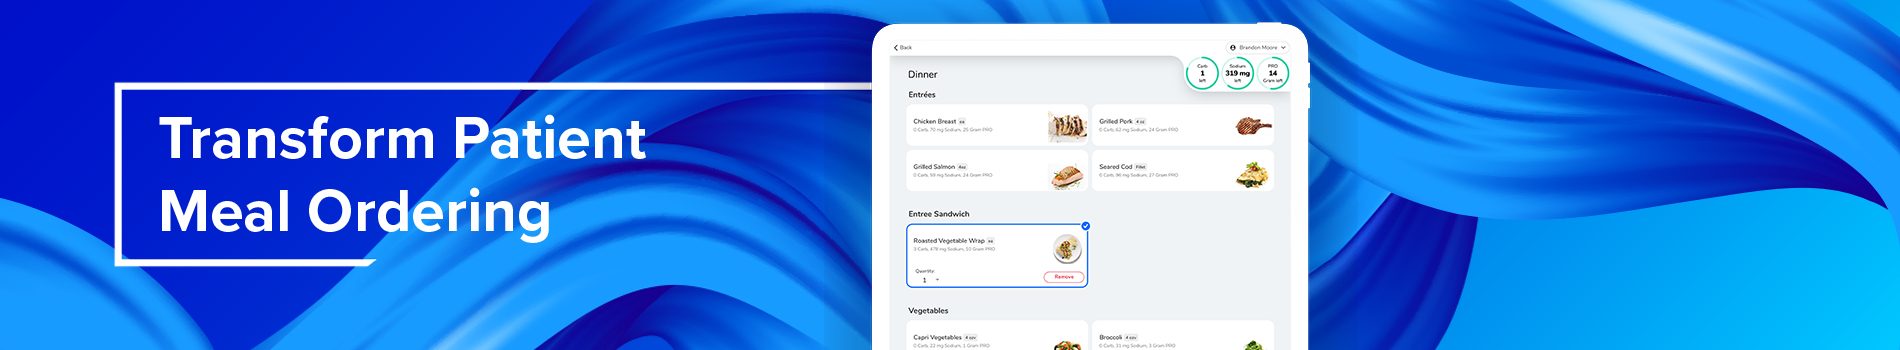 Transform Patient Meal Ordering